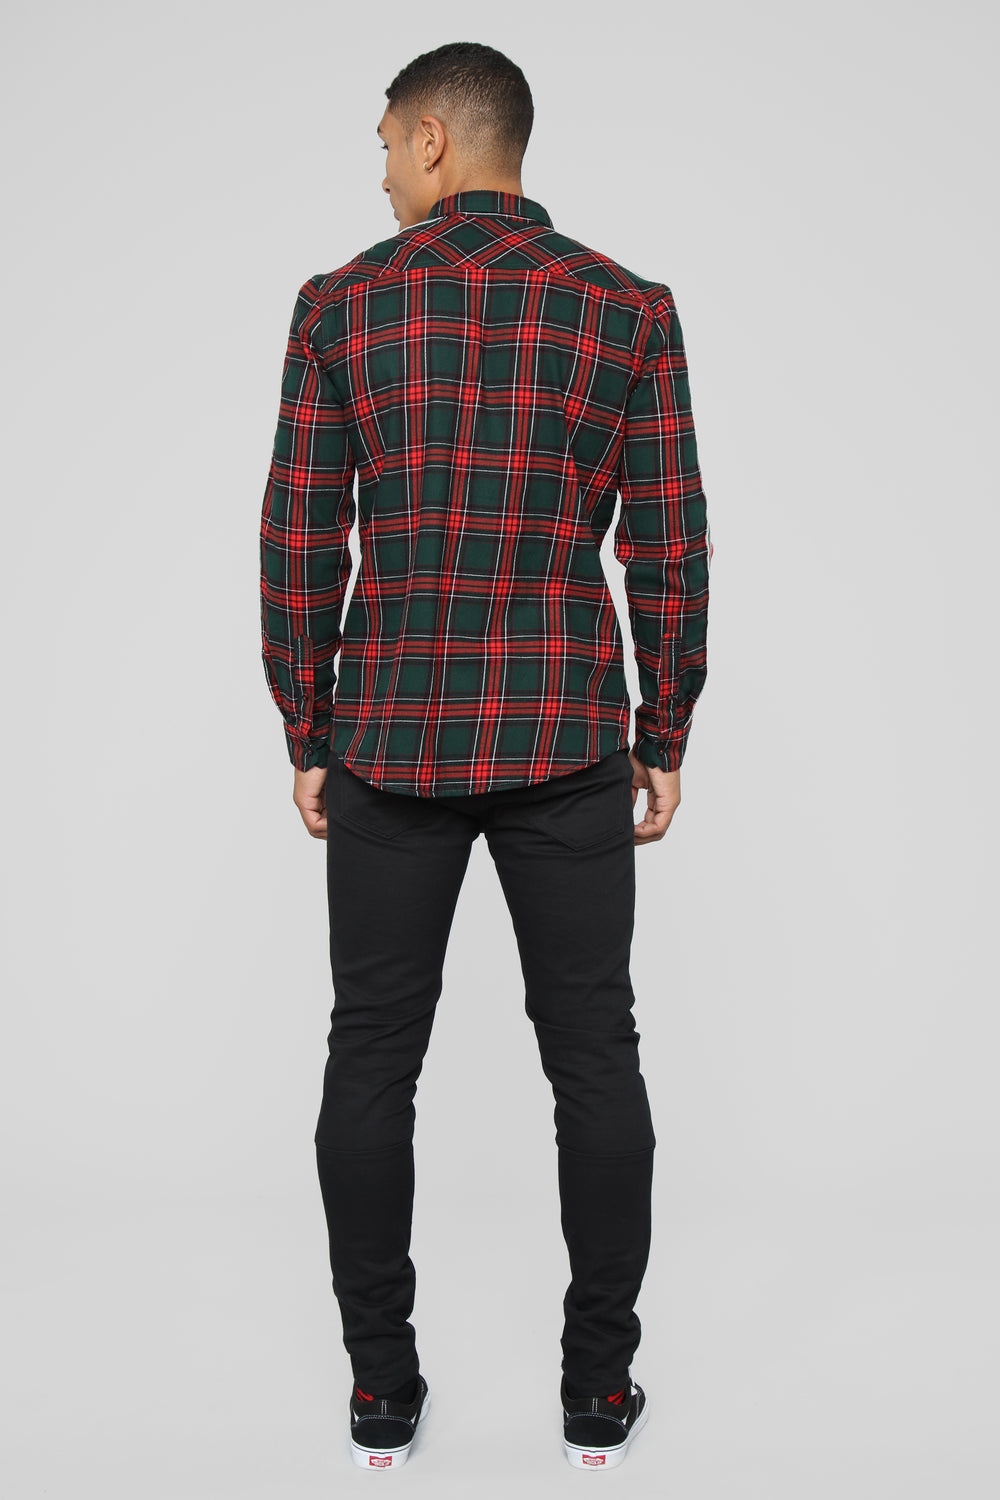 Antonio Long Sleeve Flannel Top - Red/Combo